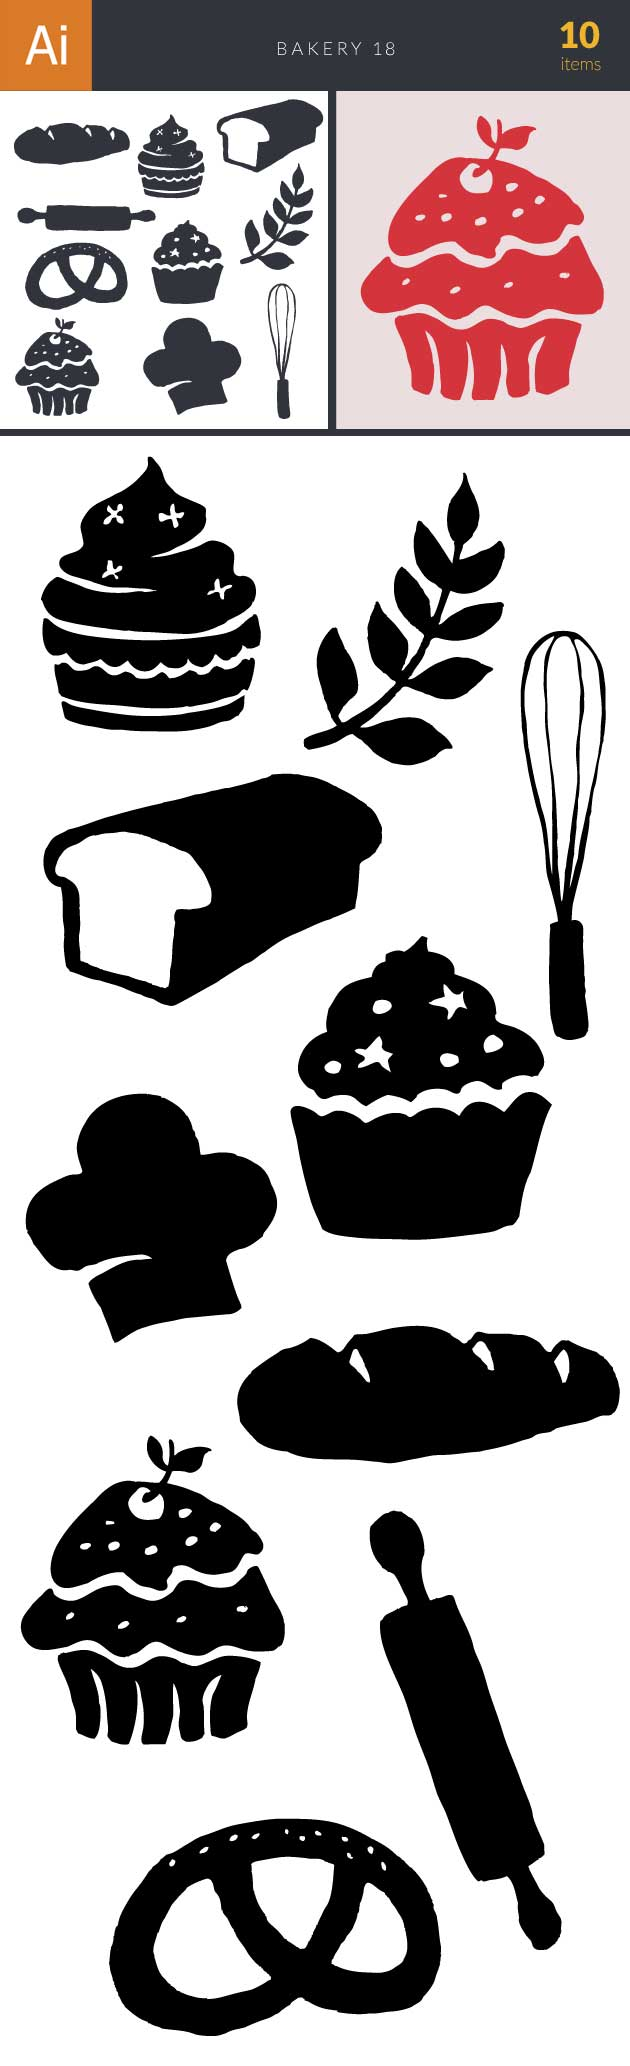 design-tnt-bakery-set-18-large-preview